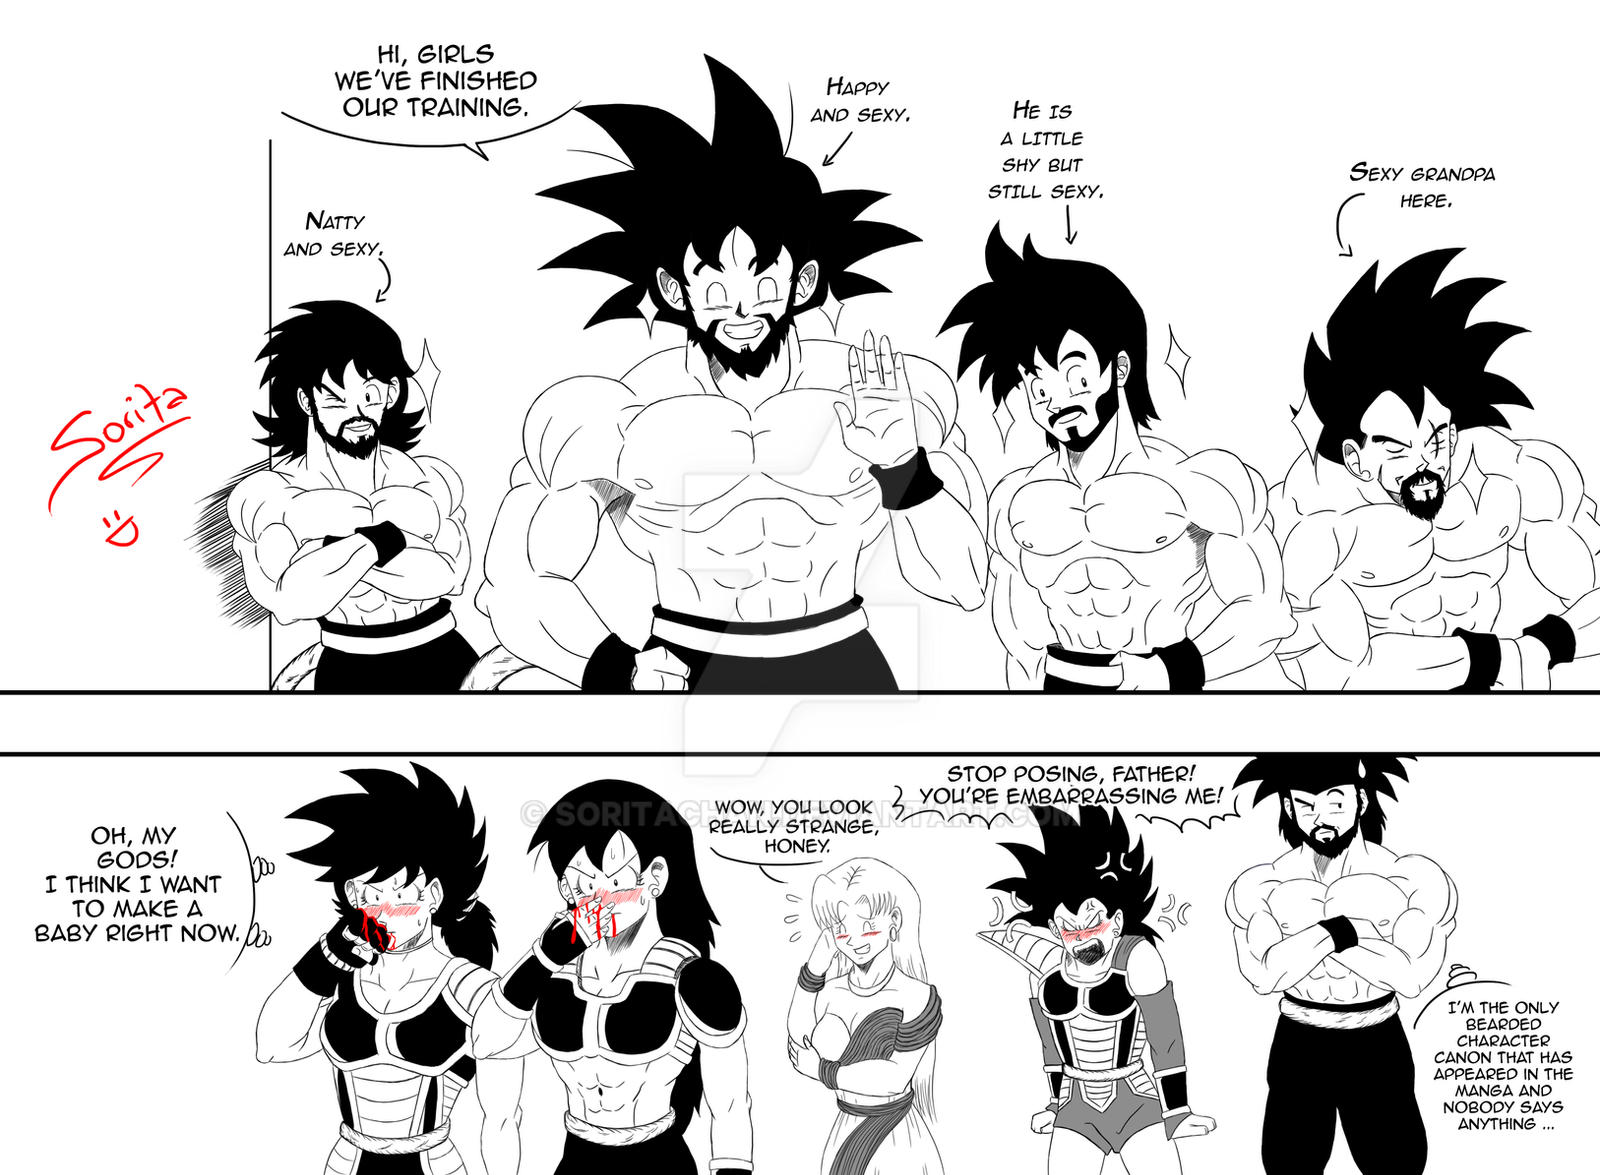 Anime Beard: When A Saiyan Gets A Beard By SoritaChan On DeviantArt